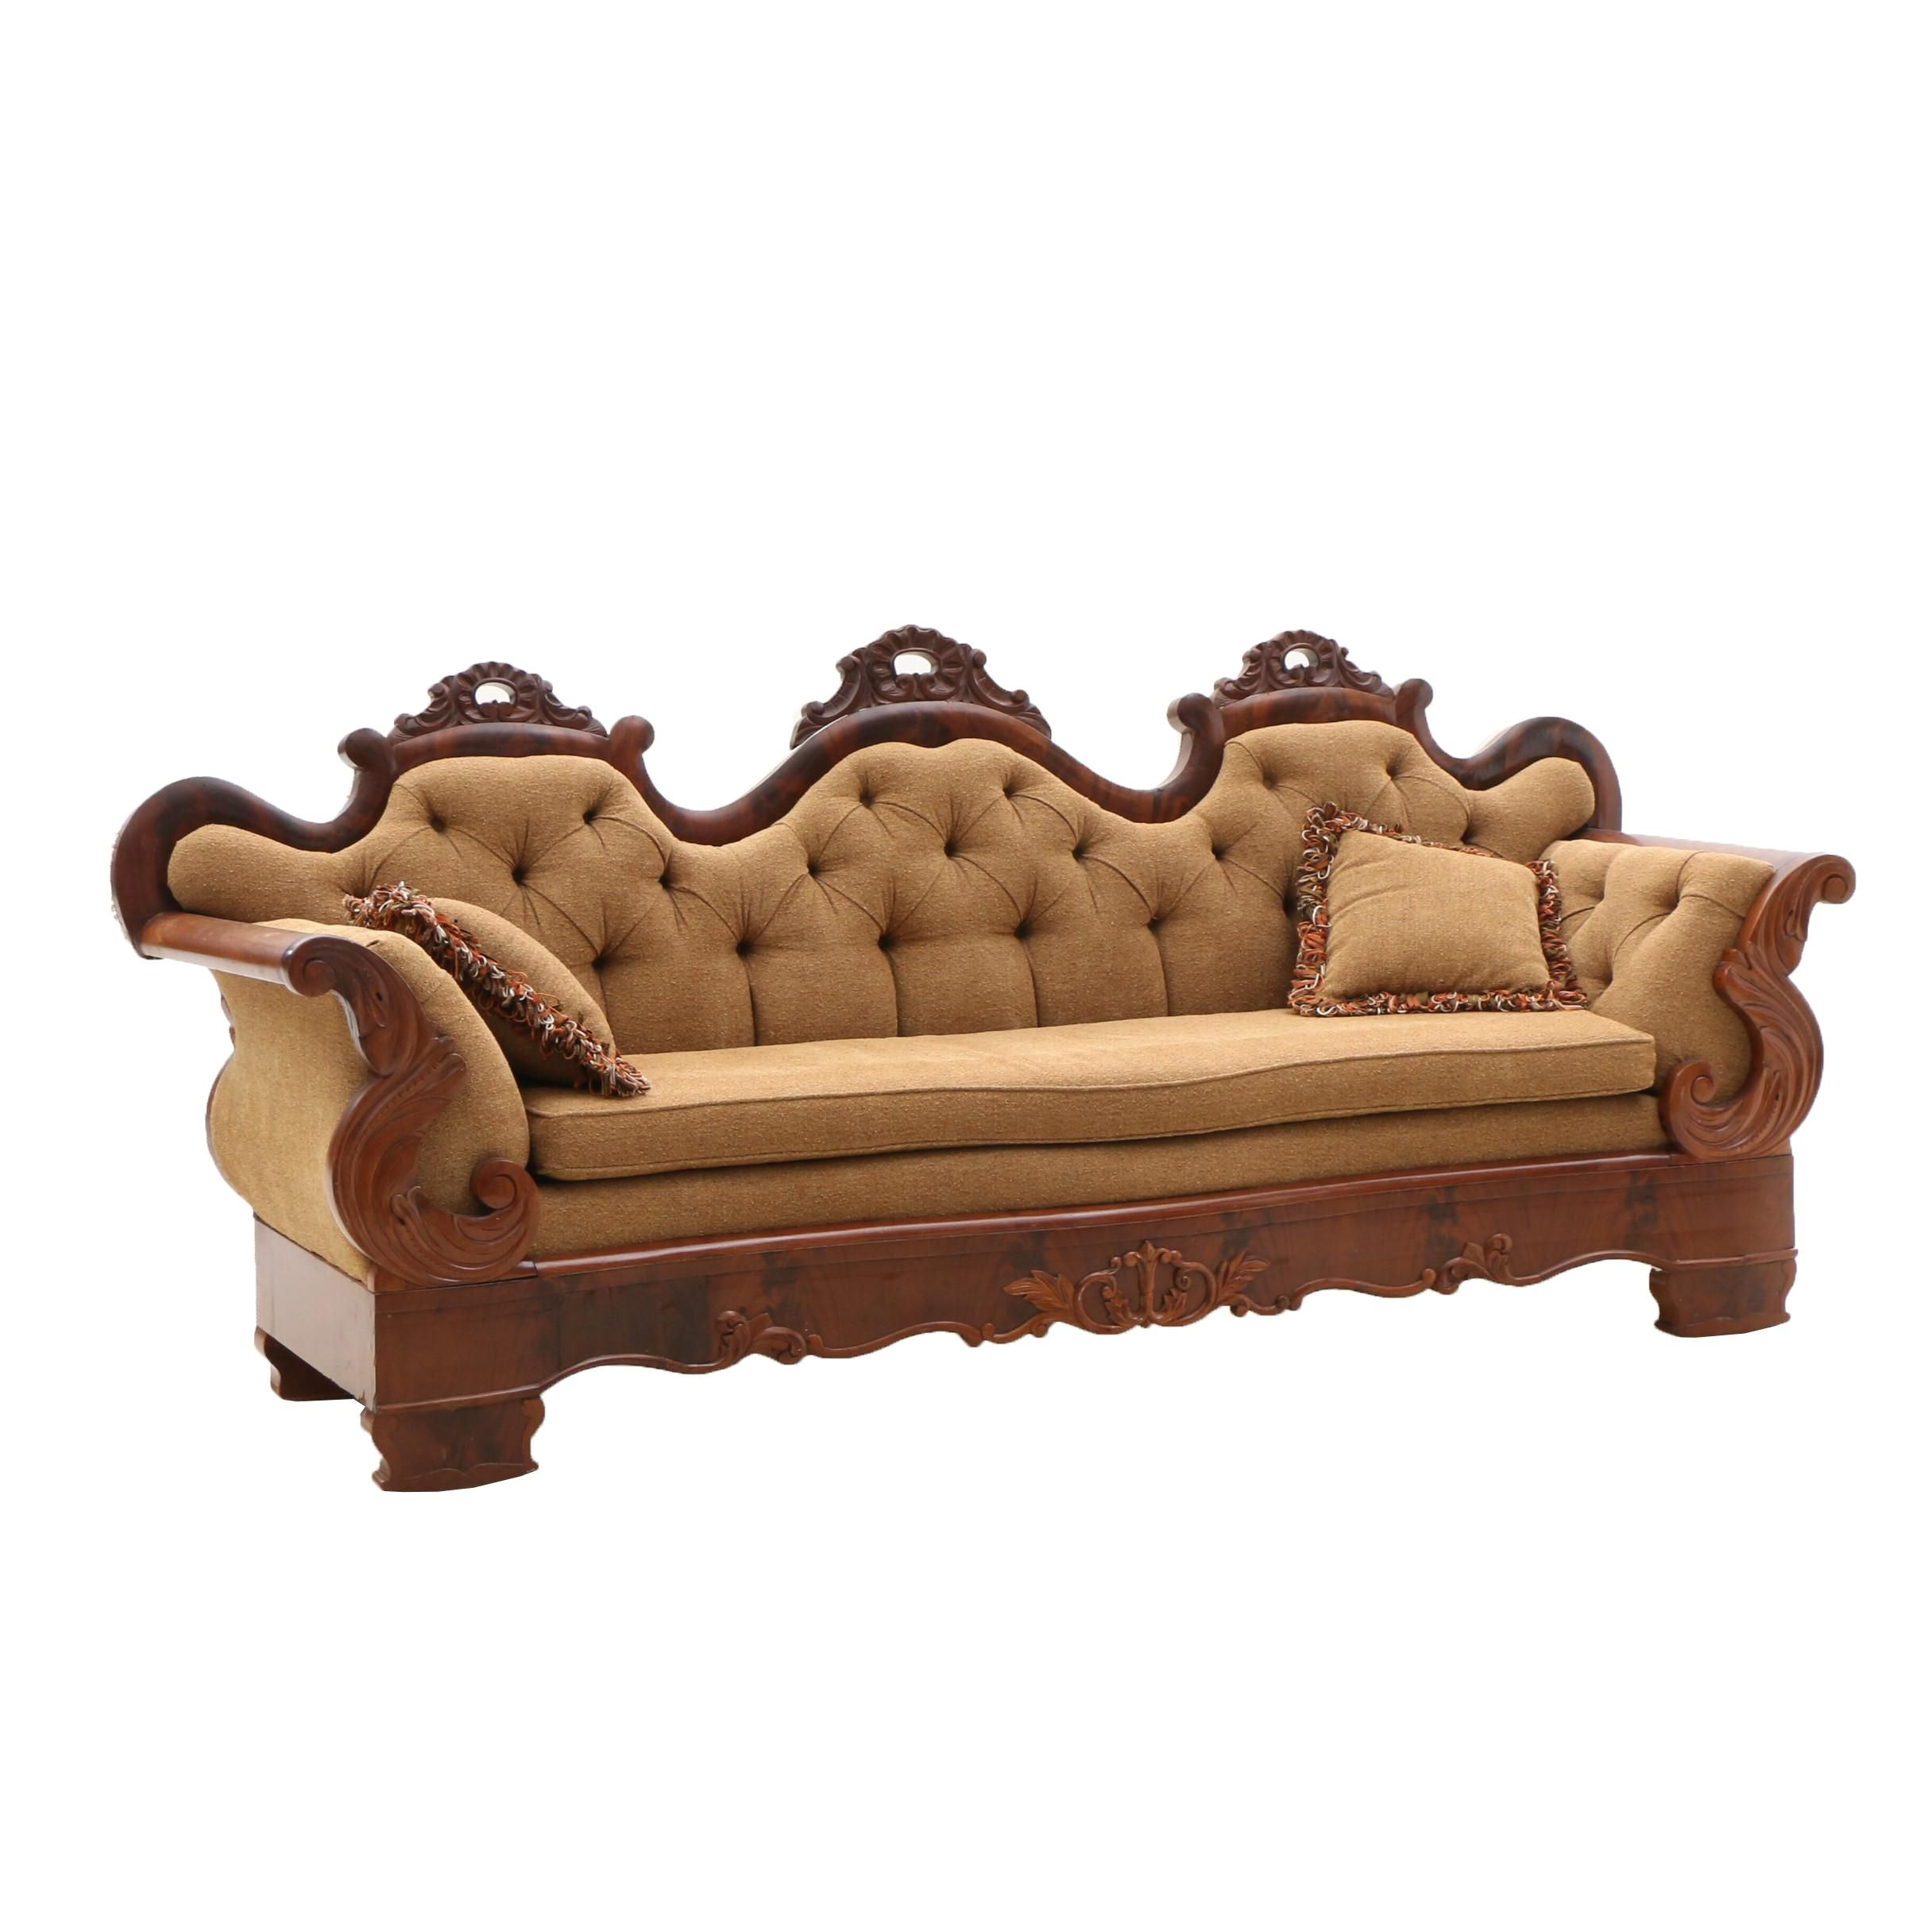 Early Victorian Mahogany Sofa Ca. 1850's